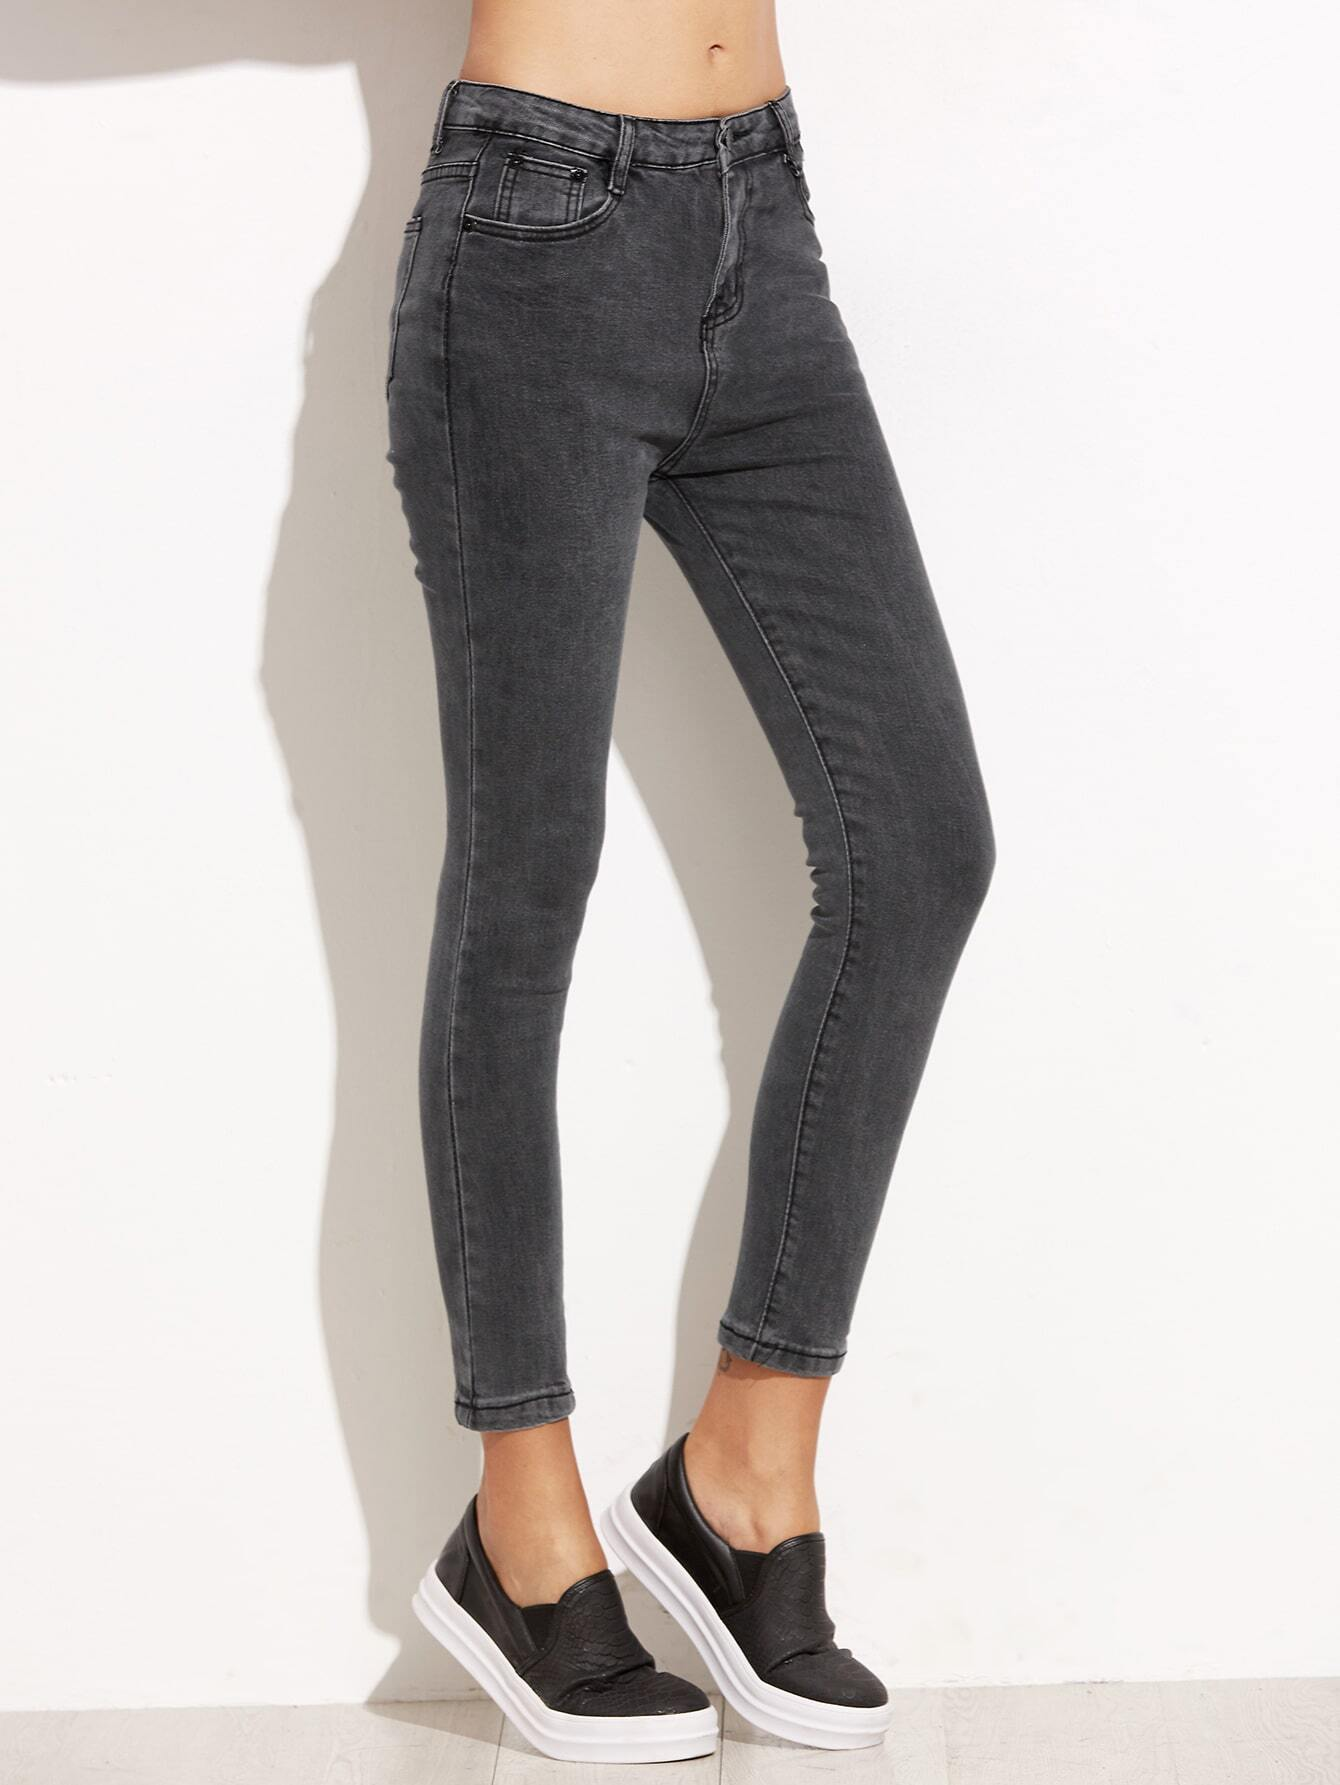 Find great deals on eBay for levis ankle jeans. Shop with confidence. Skip to main content. eBay: Levi's SHAPING SKINNY Womens Jeans SOFT BLACK NEW Slim Ankle 27x30 See more like this. New Levi's Jeans 6 Ankle Skinny Green Mid Rise .